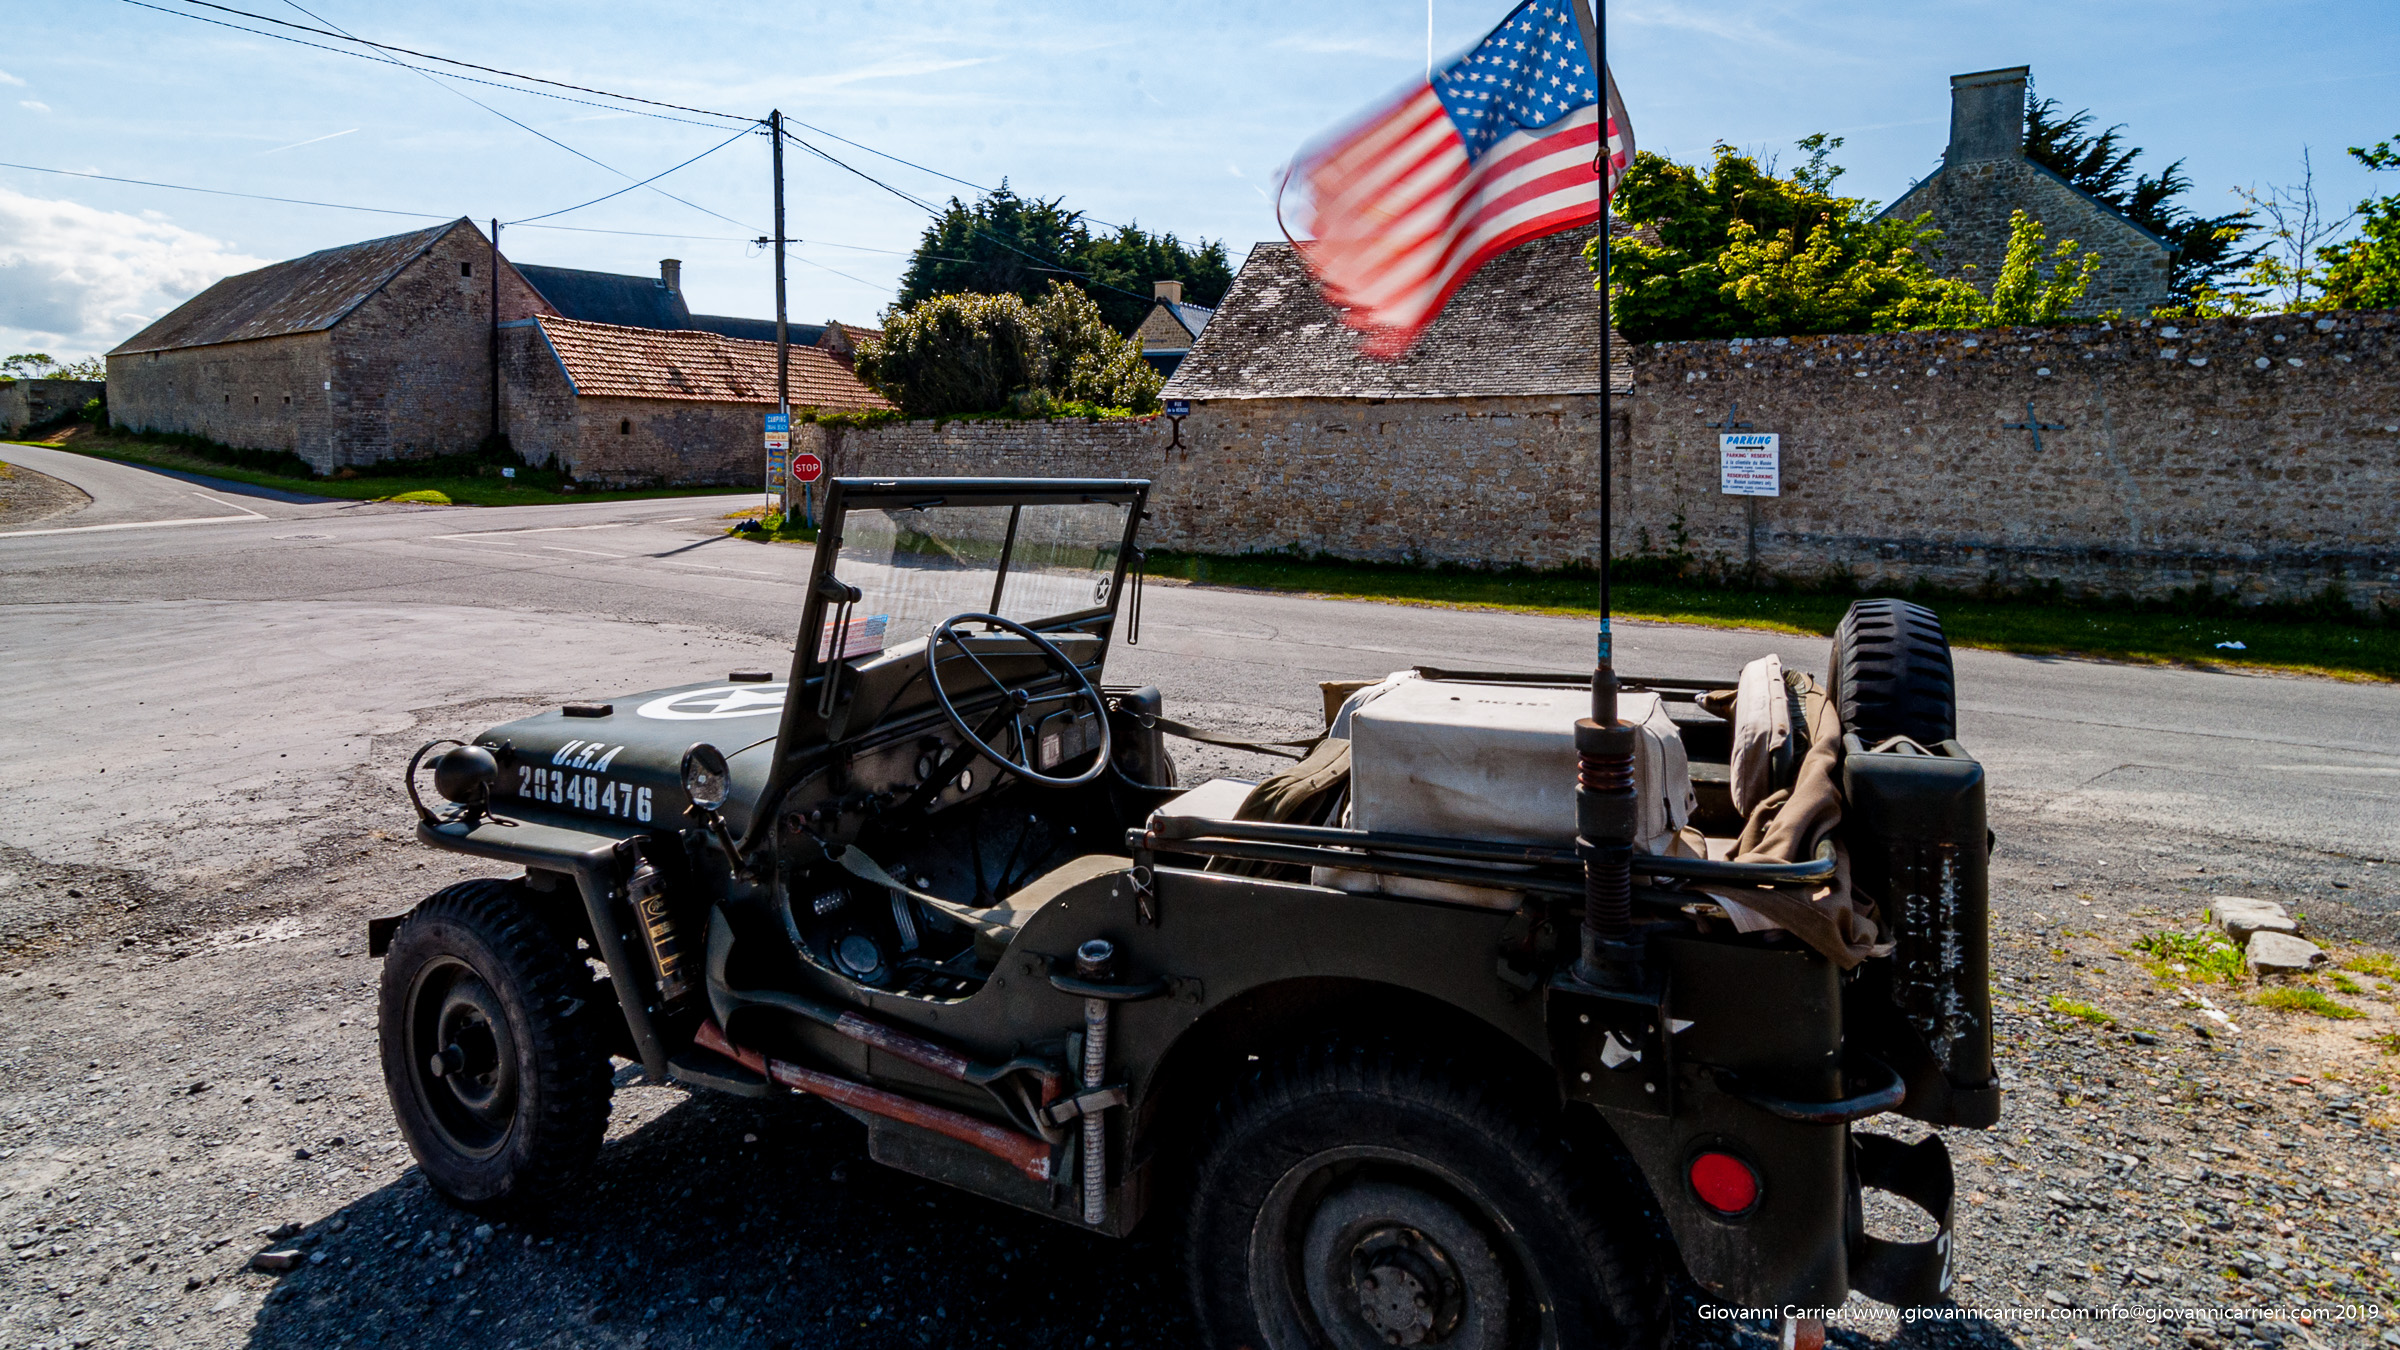 Jeep Willys MB used during World War 2